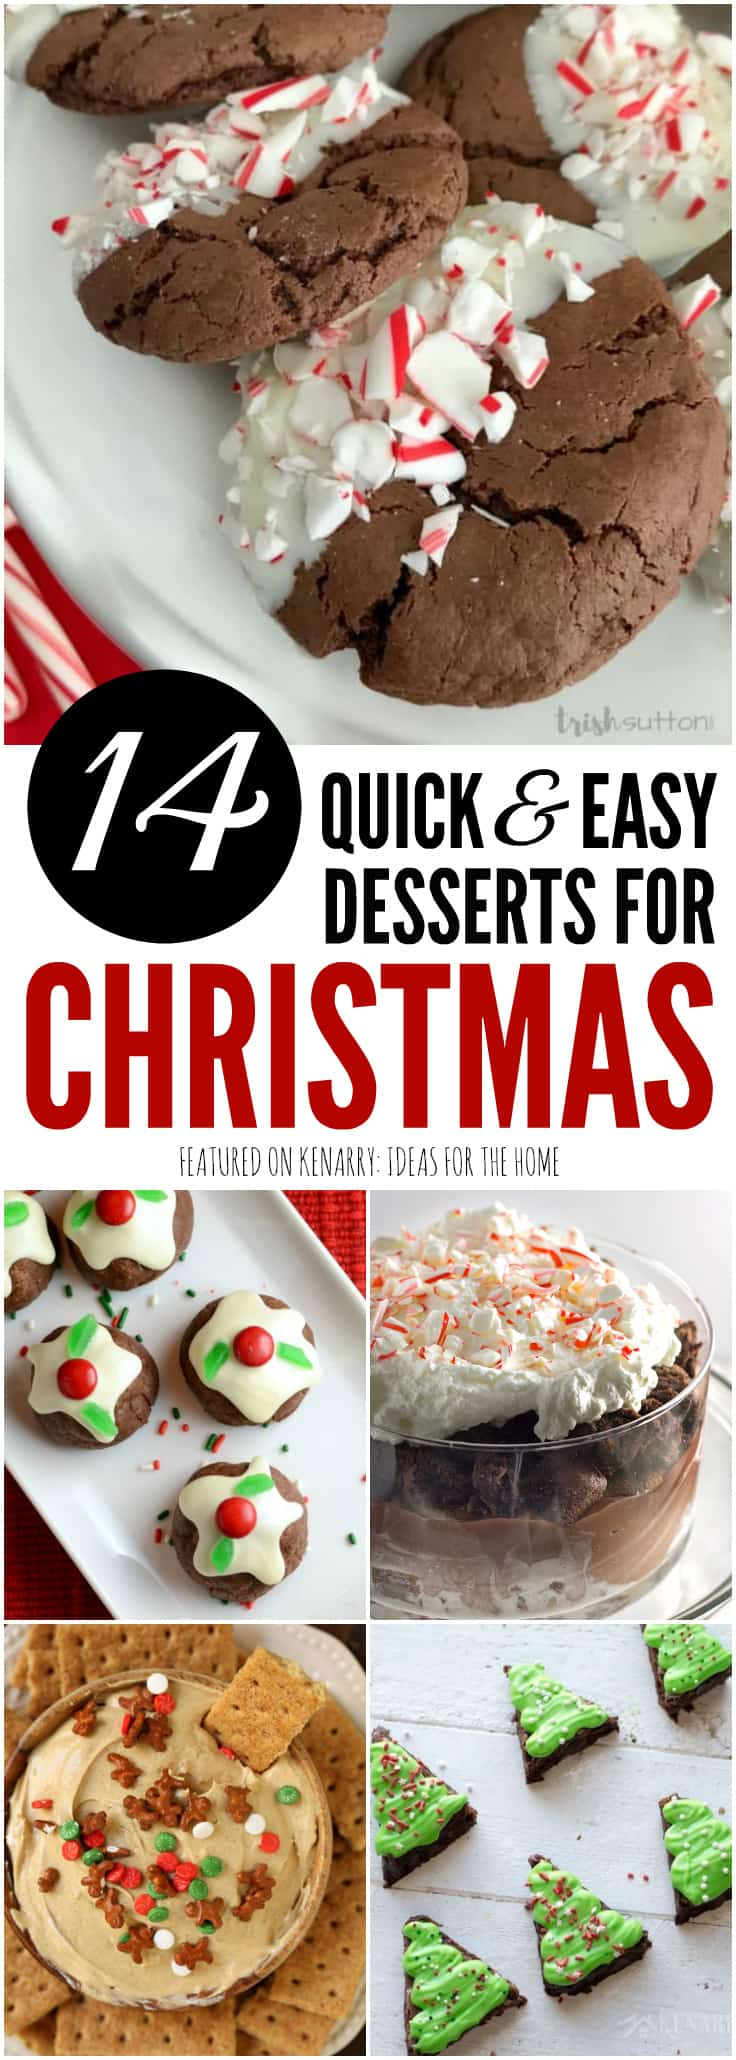 These 14 easy dessert recipes are simple and quick potluck ideas you can pack up to take anywhere you're celebrating Christmas this year. The ideas include recipes for Christmas cookies, trifles, bars, holiday fudge and so much more for your Christmas party.